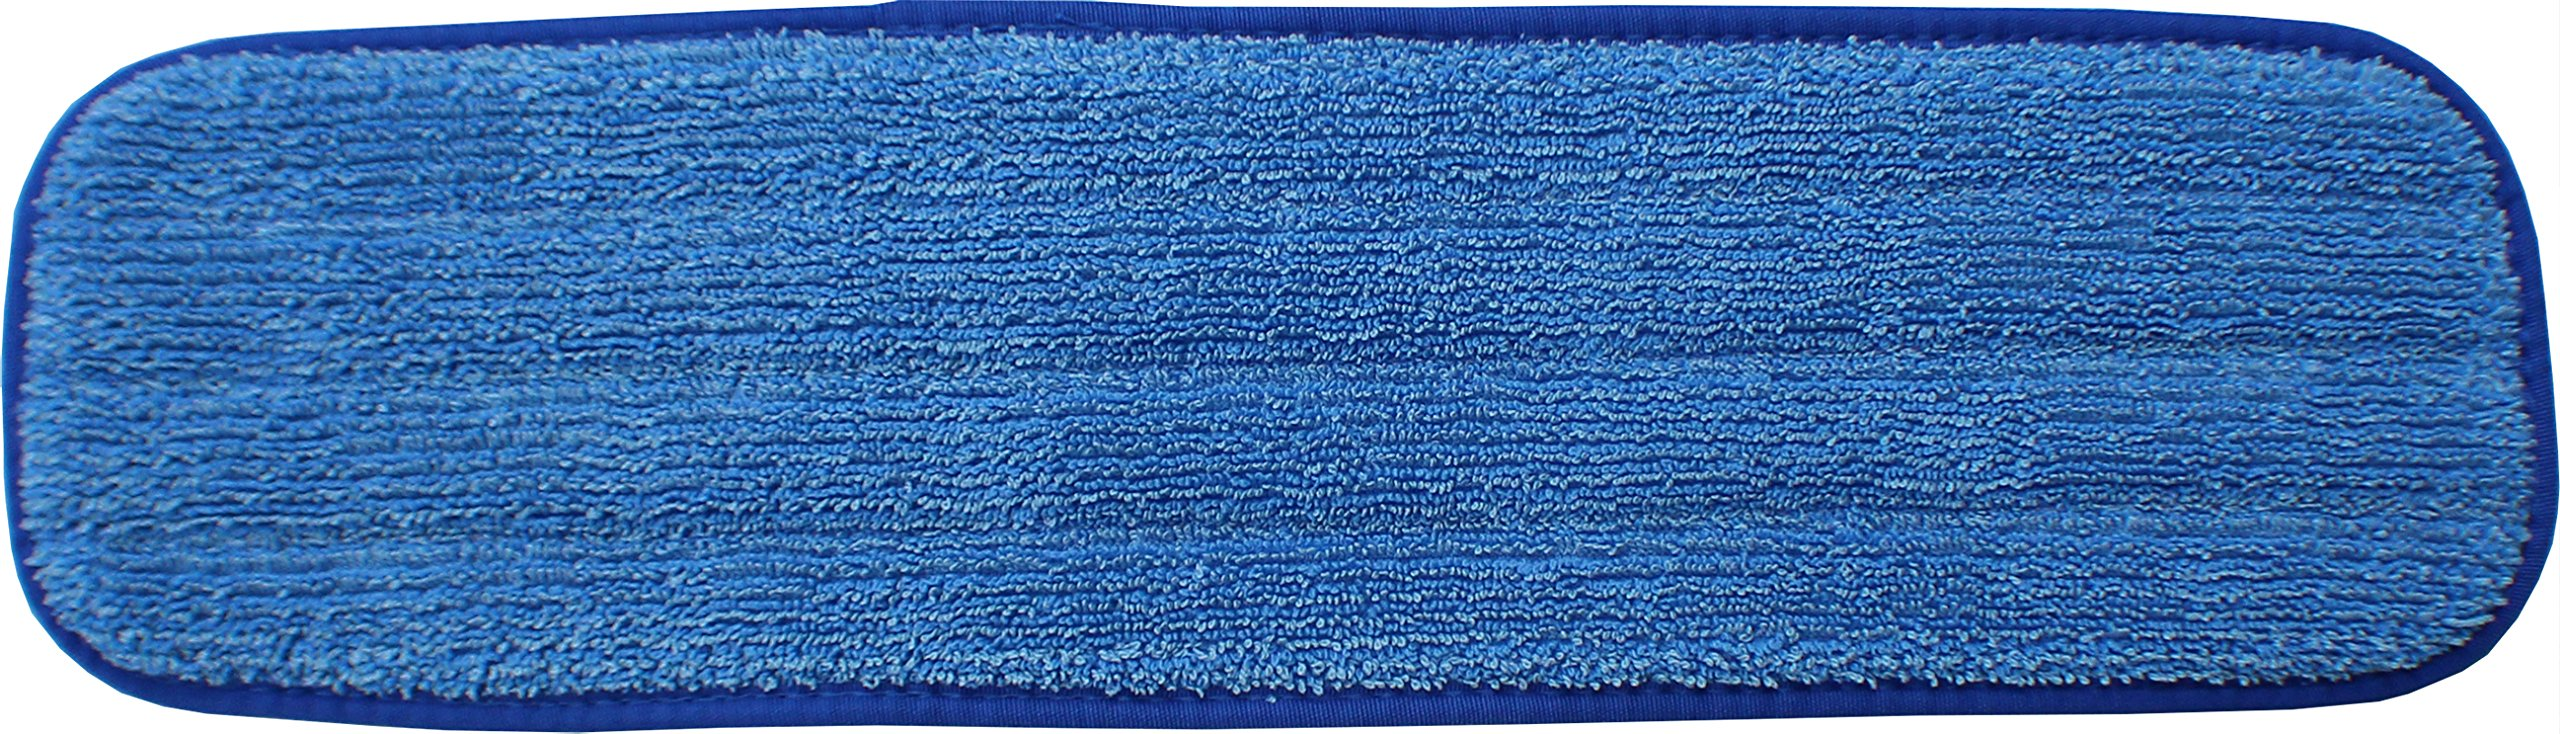 48'' Microfiber Mop Pads - Velcro, Launderable, Wet/Dry : 12 Pack by Direct Mop Sales (Image #2)